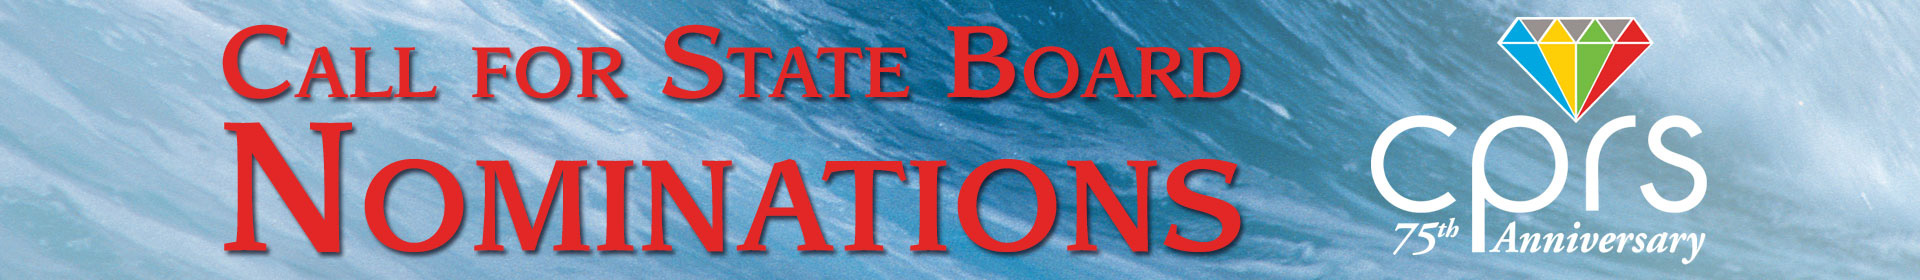 Blue banner with words Call for State Board Nominations and CPRS Logo